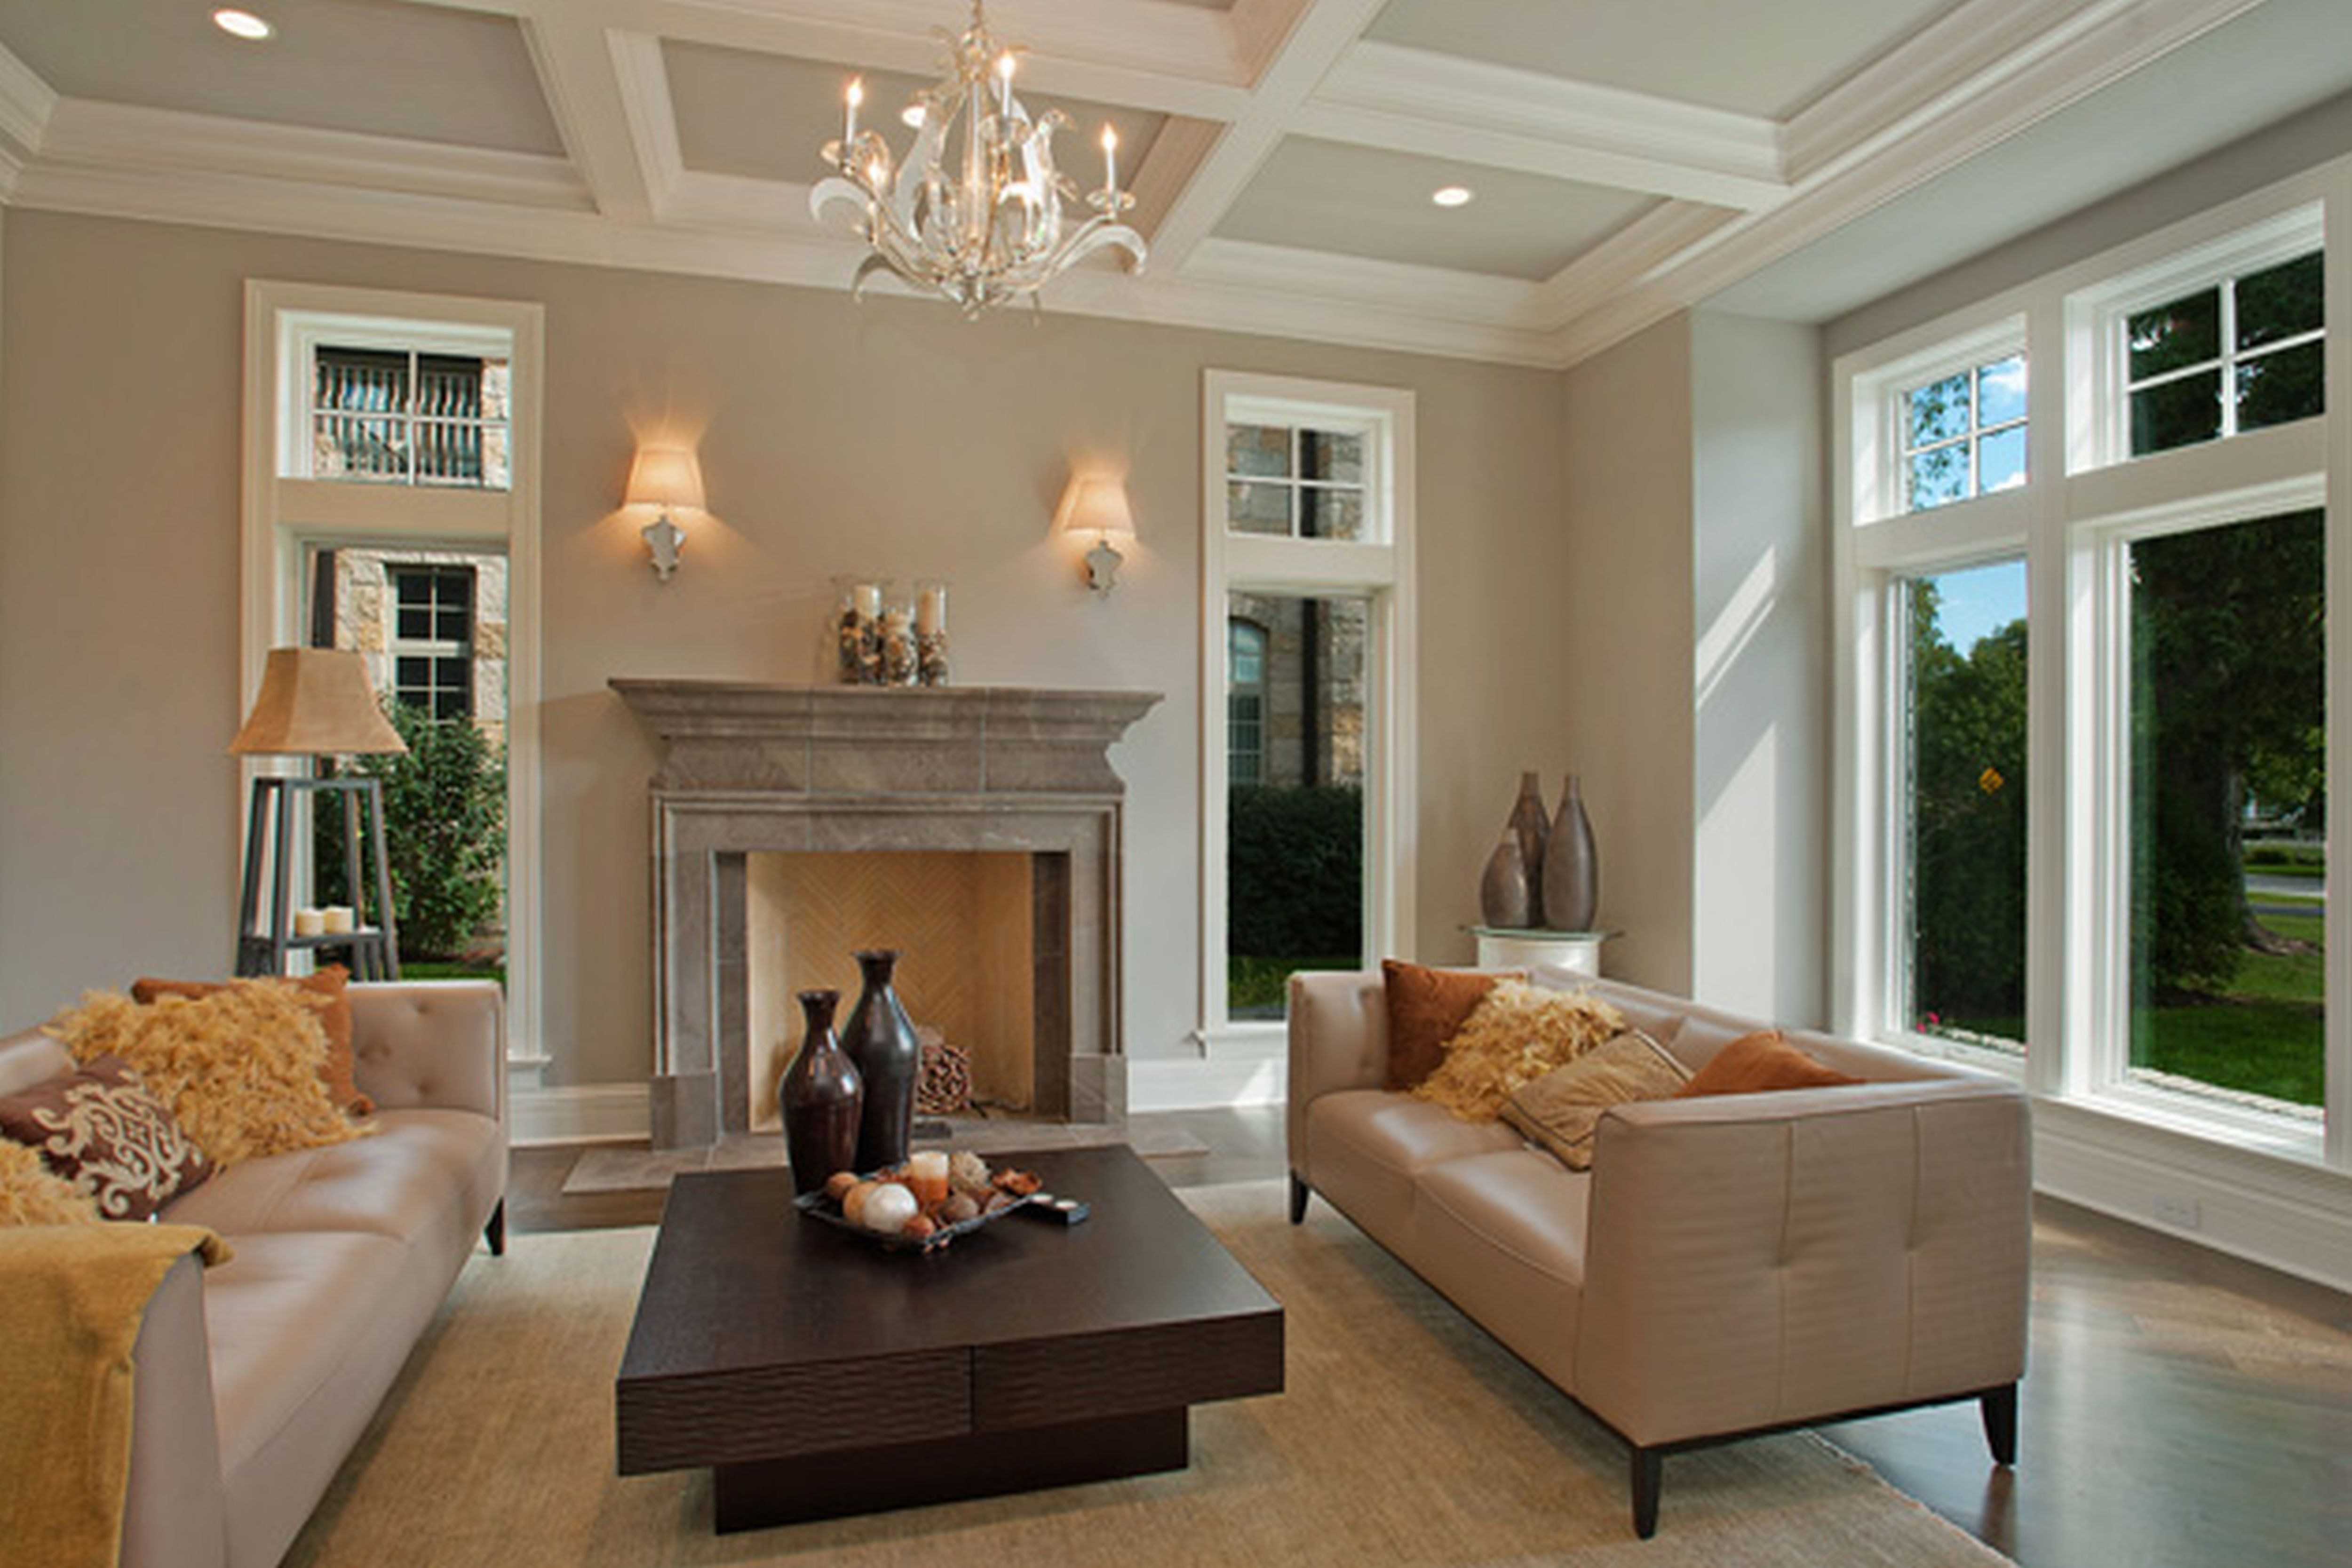 appealing neutral paint colors living room | Interior,Admirable Gray Wall Paint Indoor Stone Fireplace ...